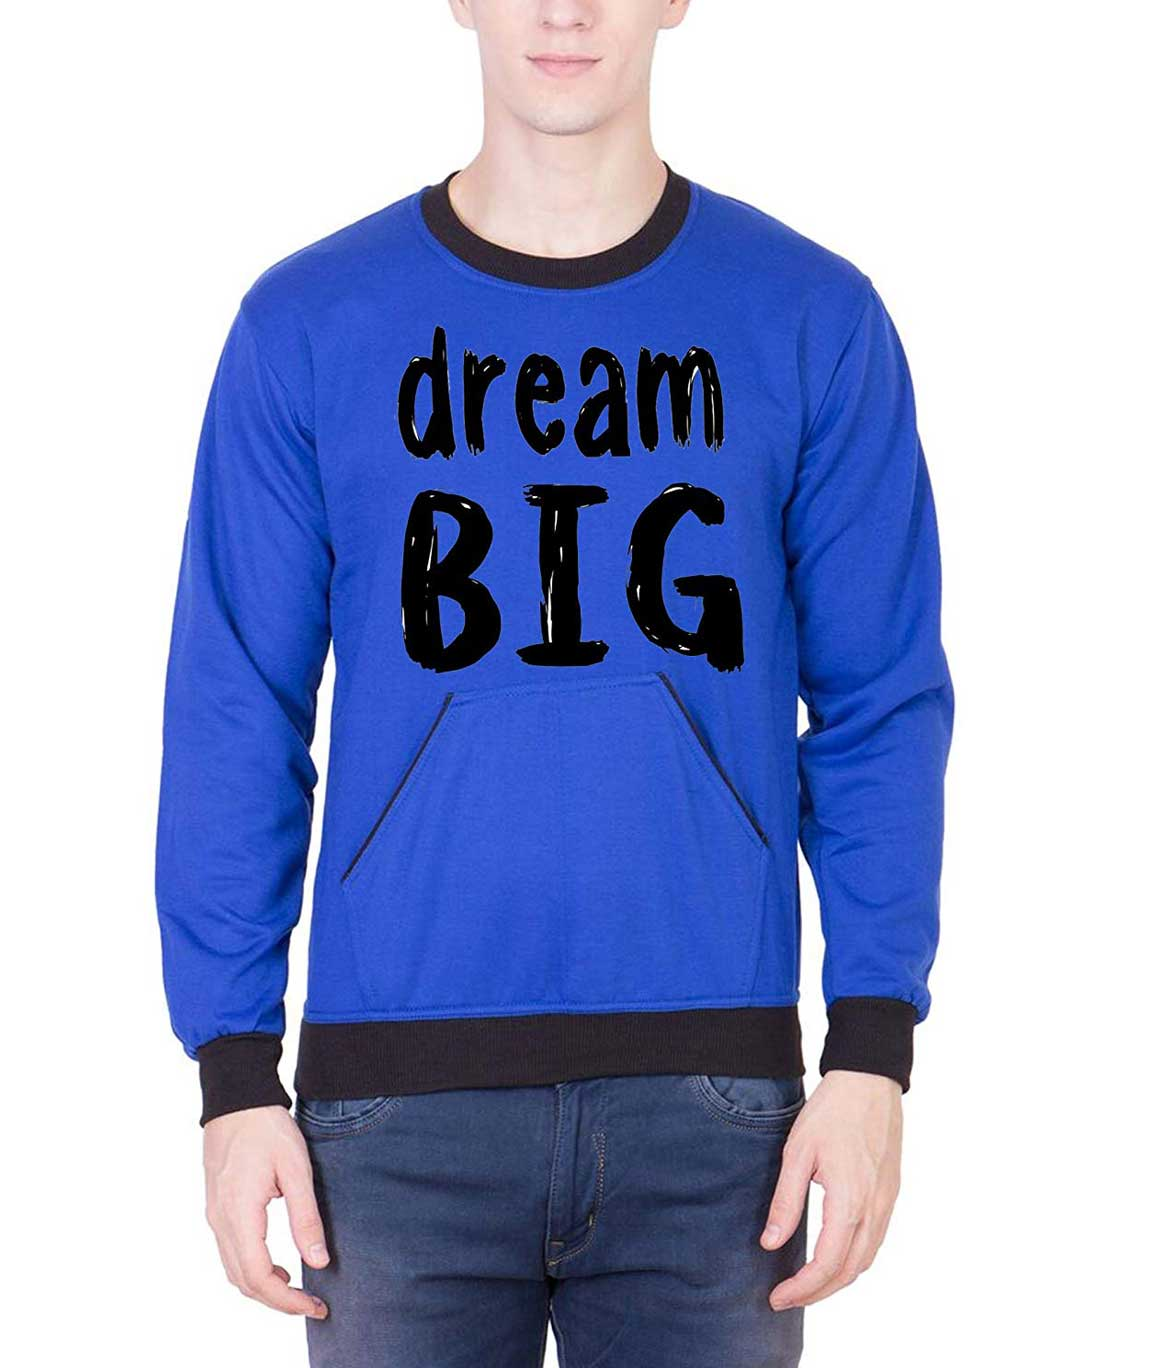 Vestiario Dream Big Round Neck Sweatshirt with Free Black Cap